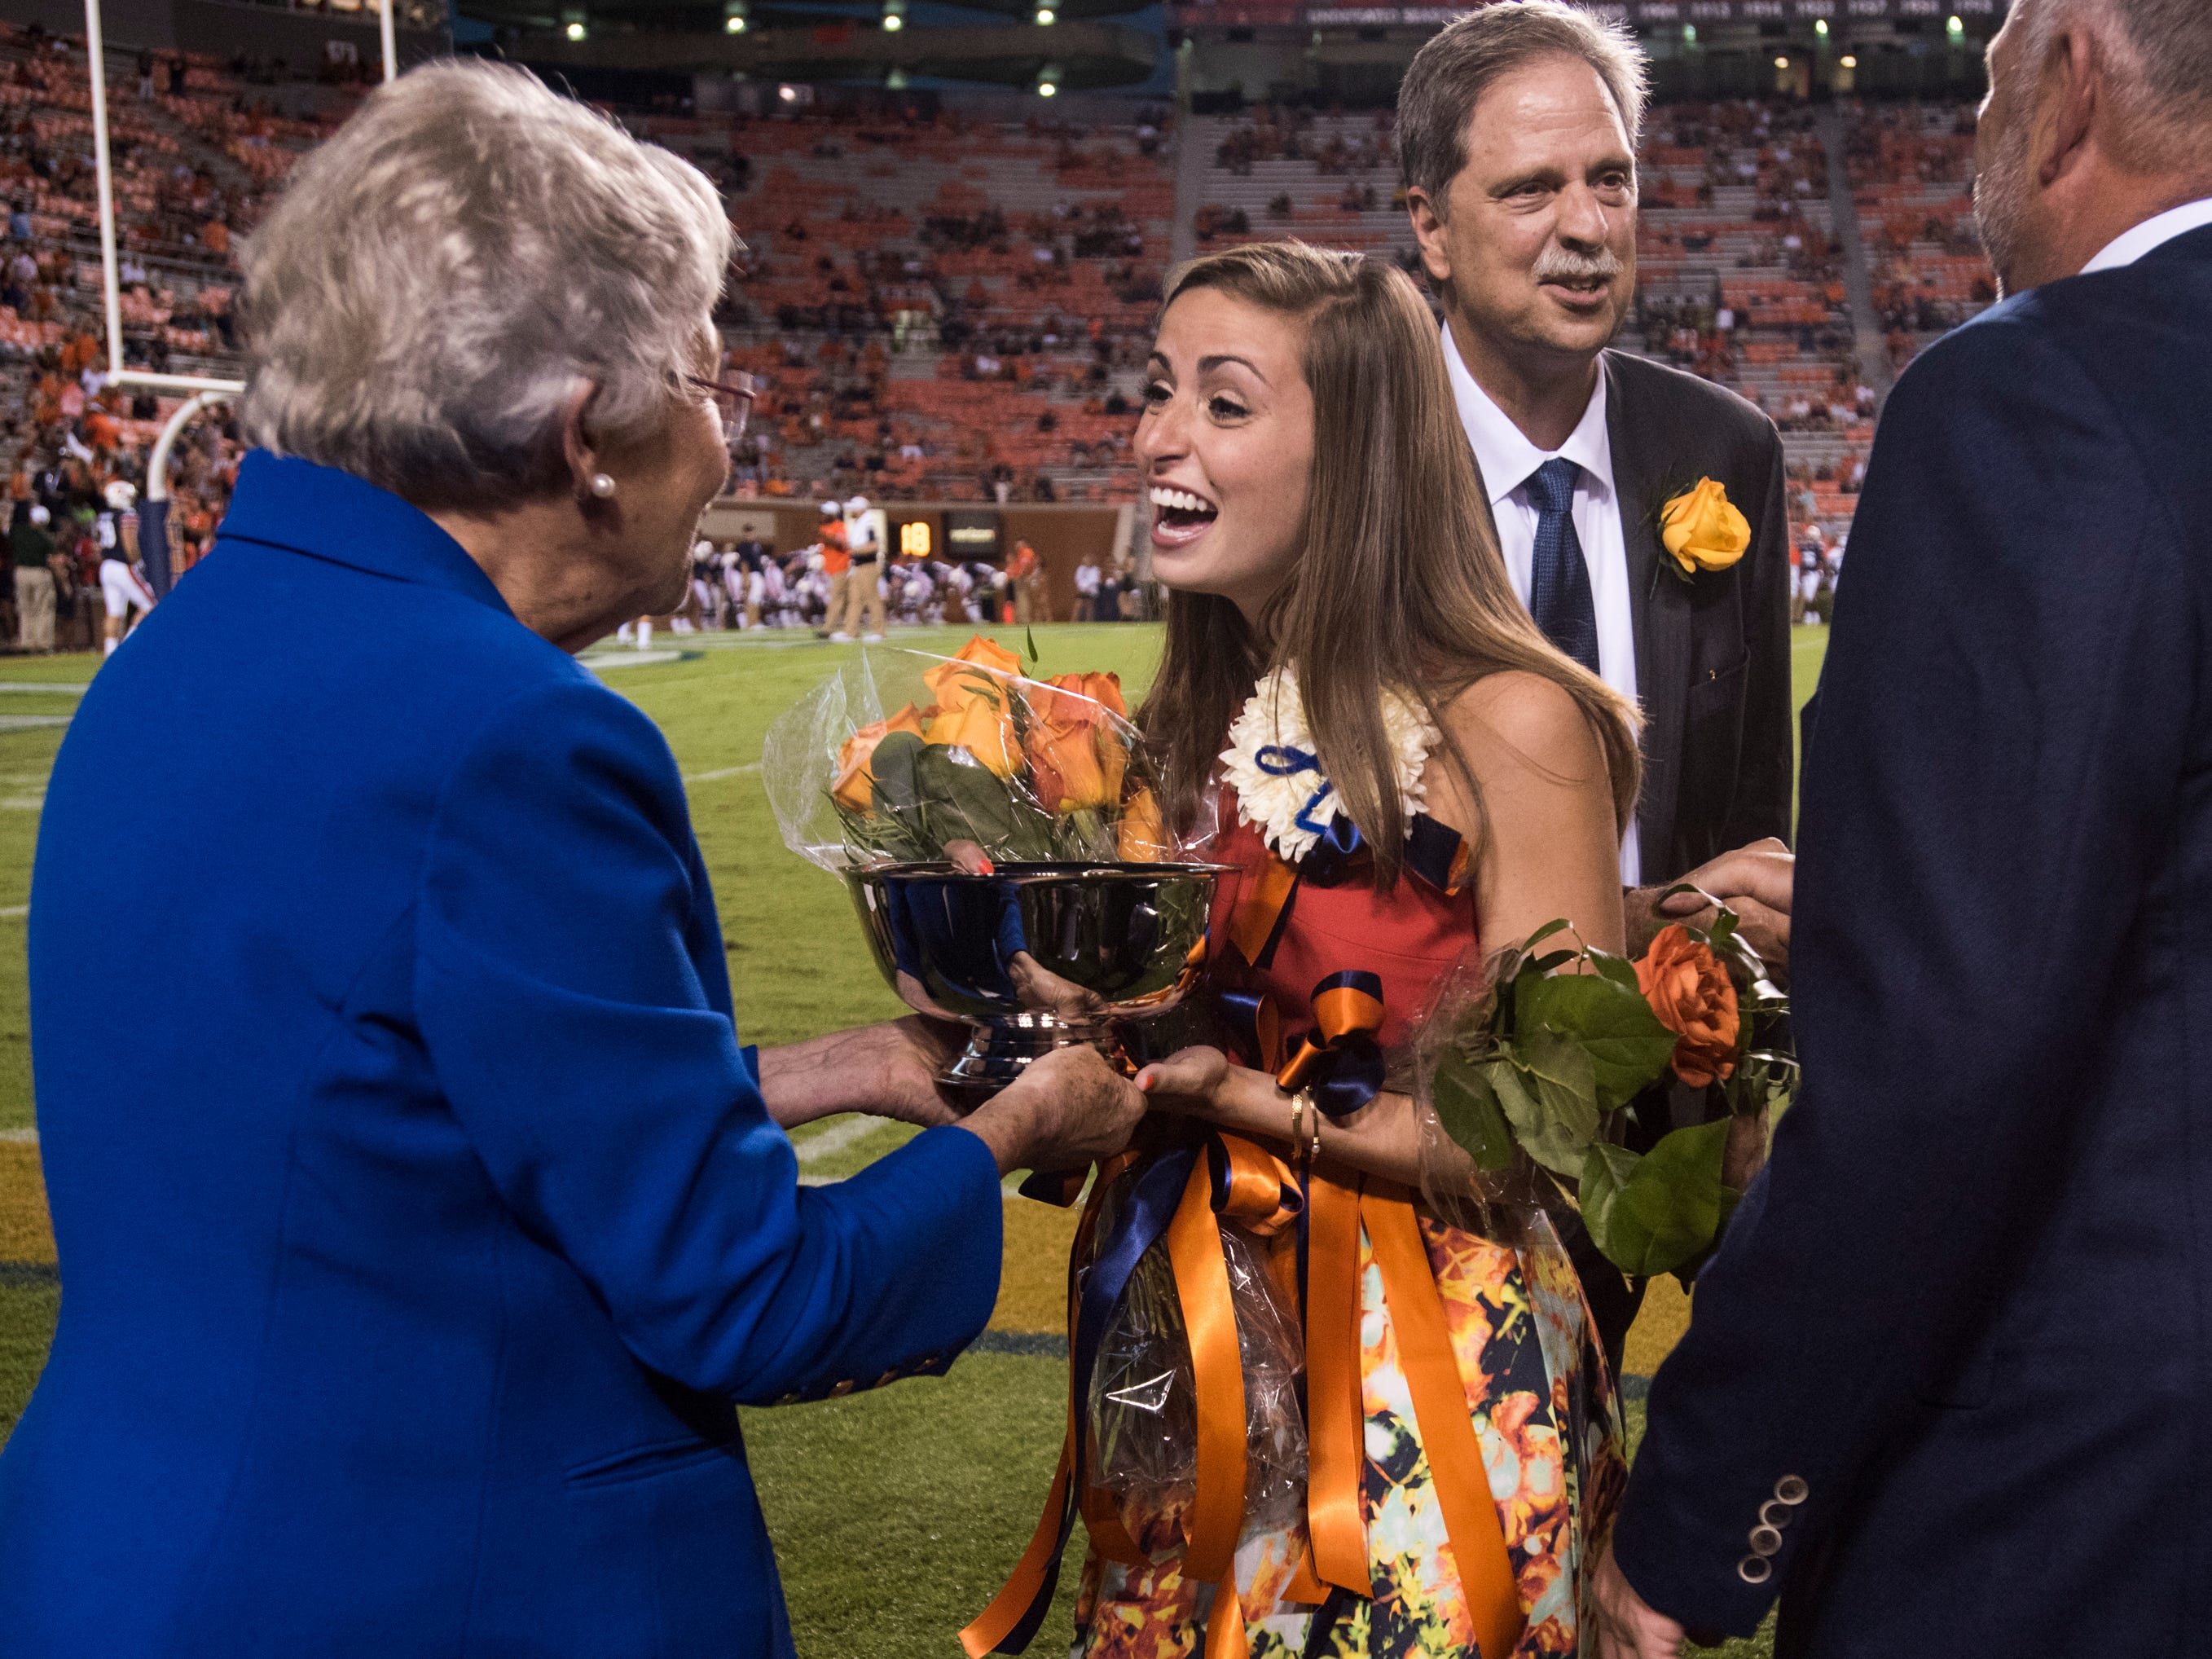 Alabama Gov. Kay Ivey presents Sadie Argo with her trophy after being announced homecoming queen at Jordan-Hare Stadium in Auburn, Ala., on Saturday, Sept. 29, 2018. Auburn defeated  Southern Miss 24-13.